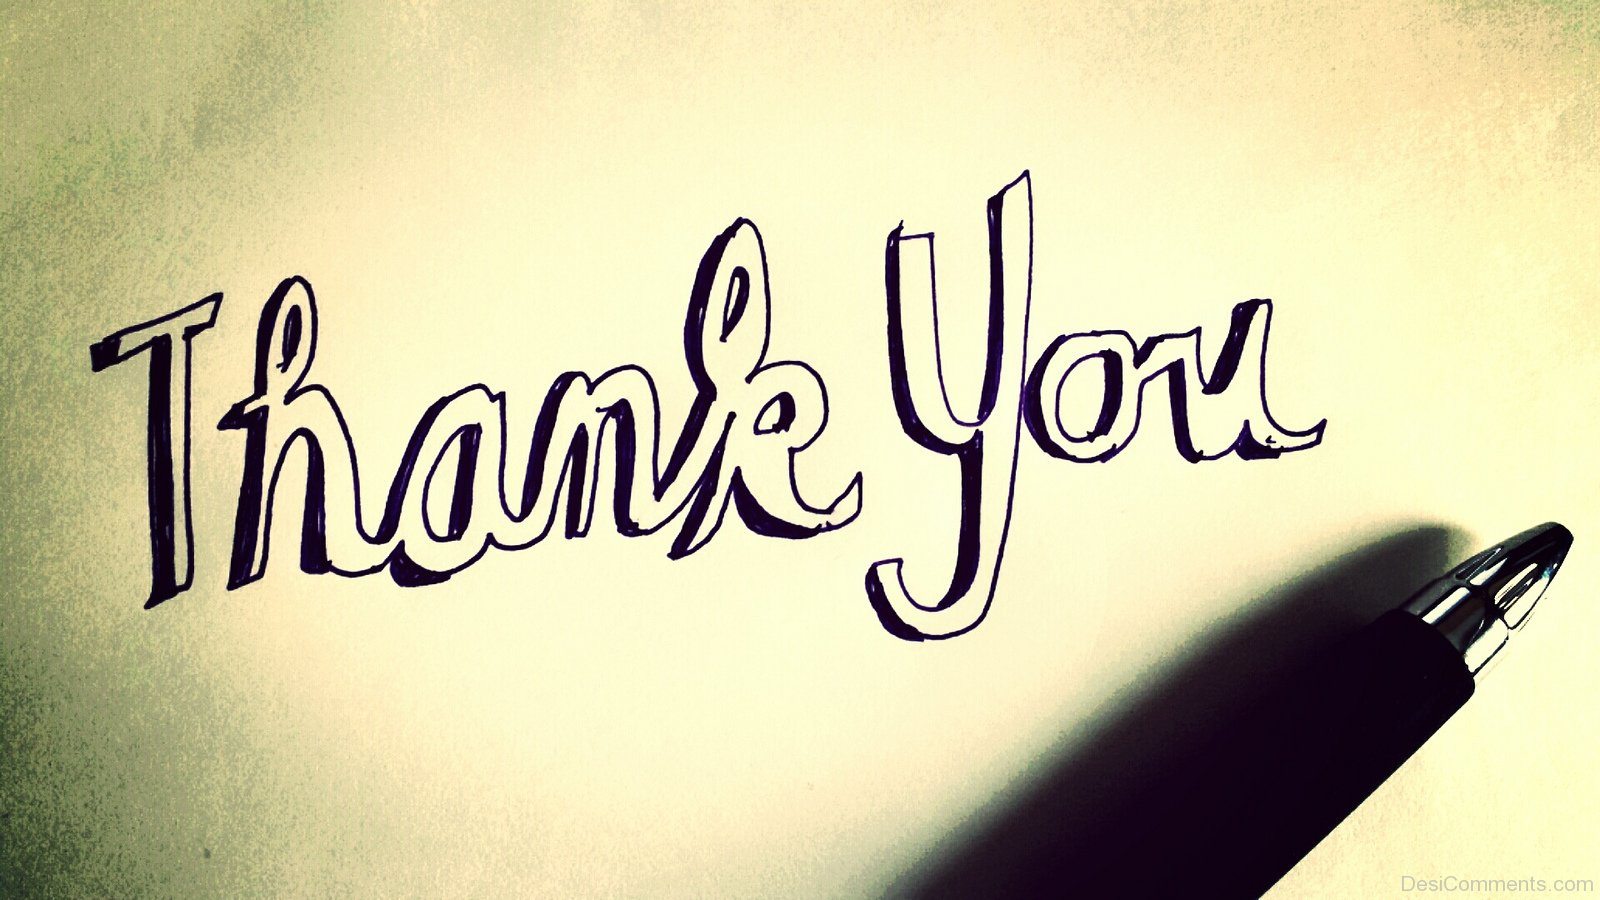 Thank you pictures images graphics thank you picture voltagebd Choice Image